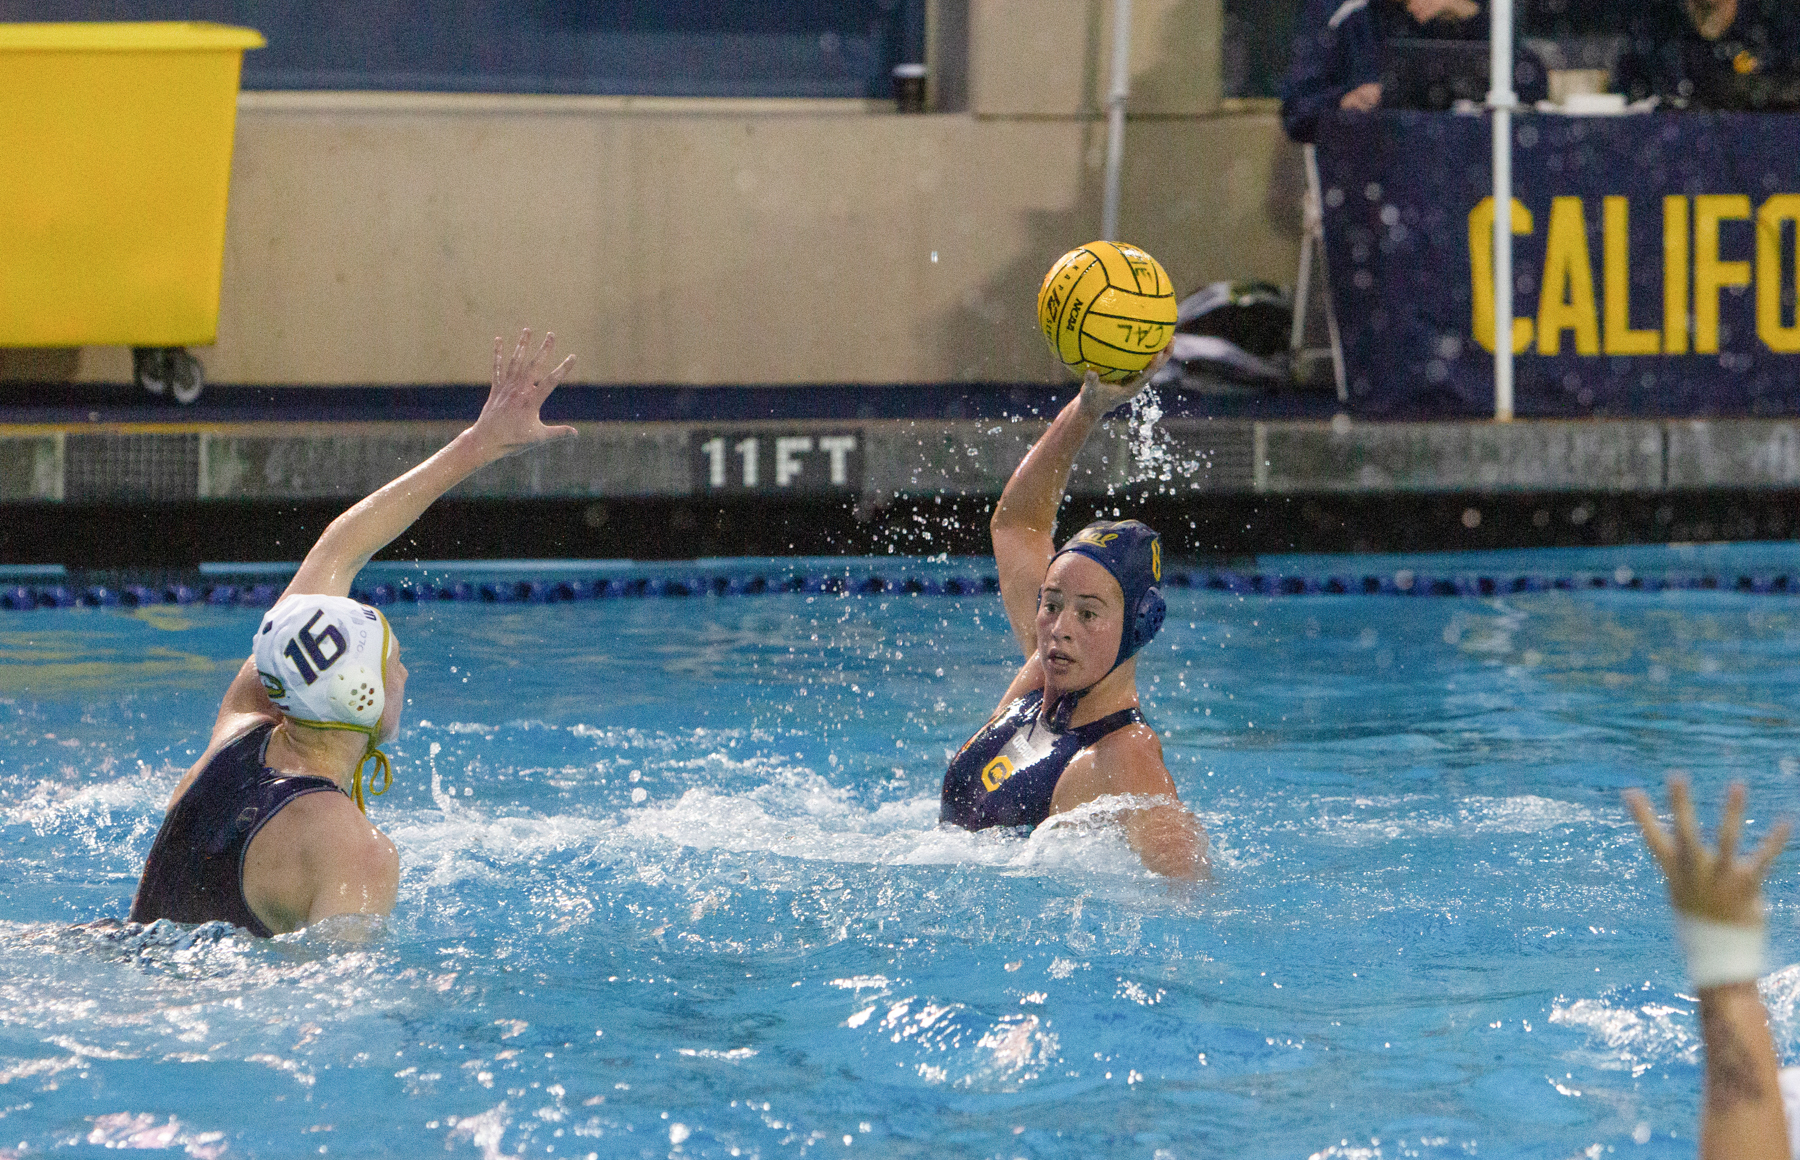 Image of women's water polo